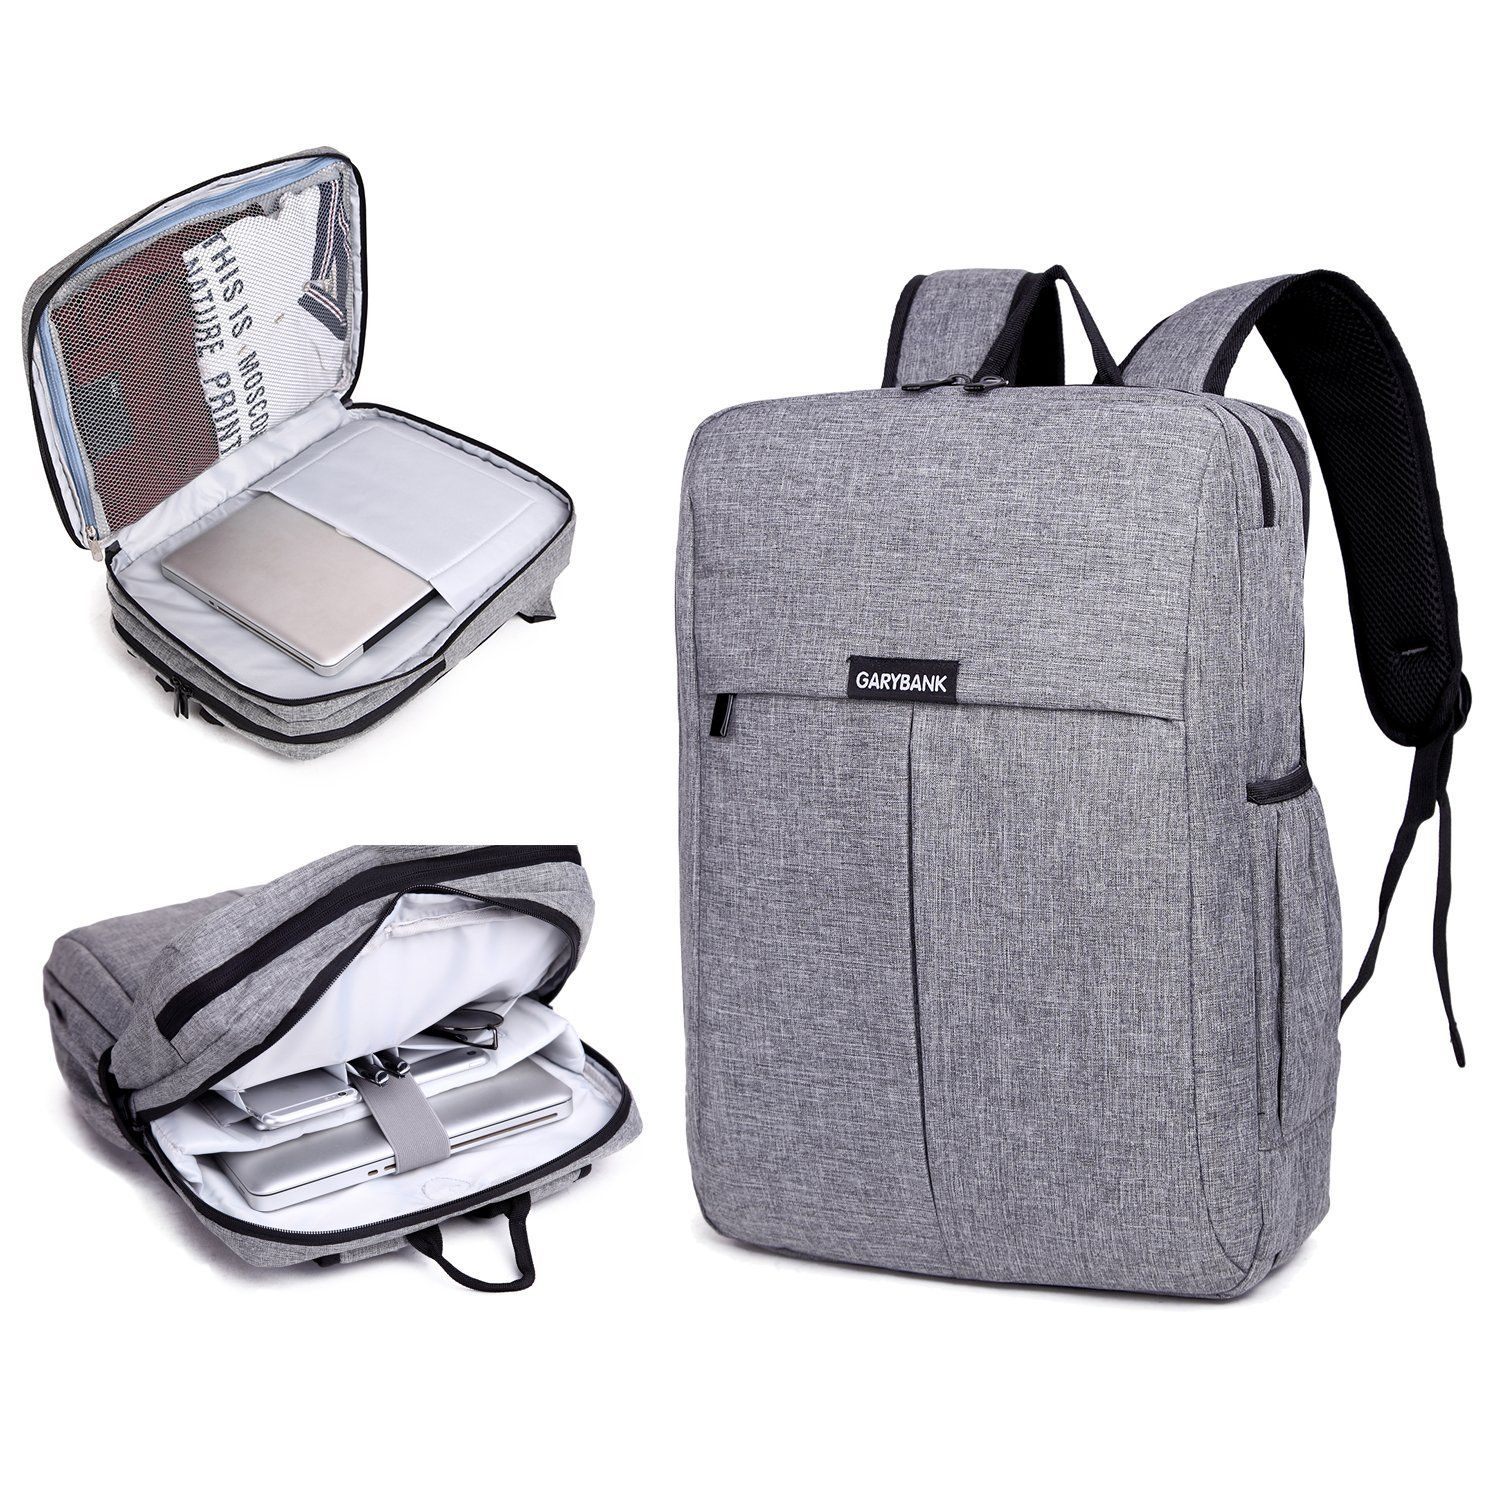 0f5c1322c02 Amazon.com  Garybank Waterproof Laptop Backpack For Women Men Both Top  Loader and Panel Loader Slim Business Backpack Good For College School  Travel ...